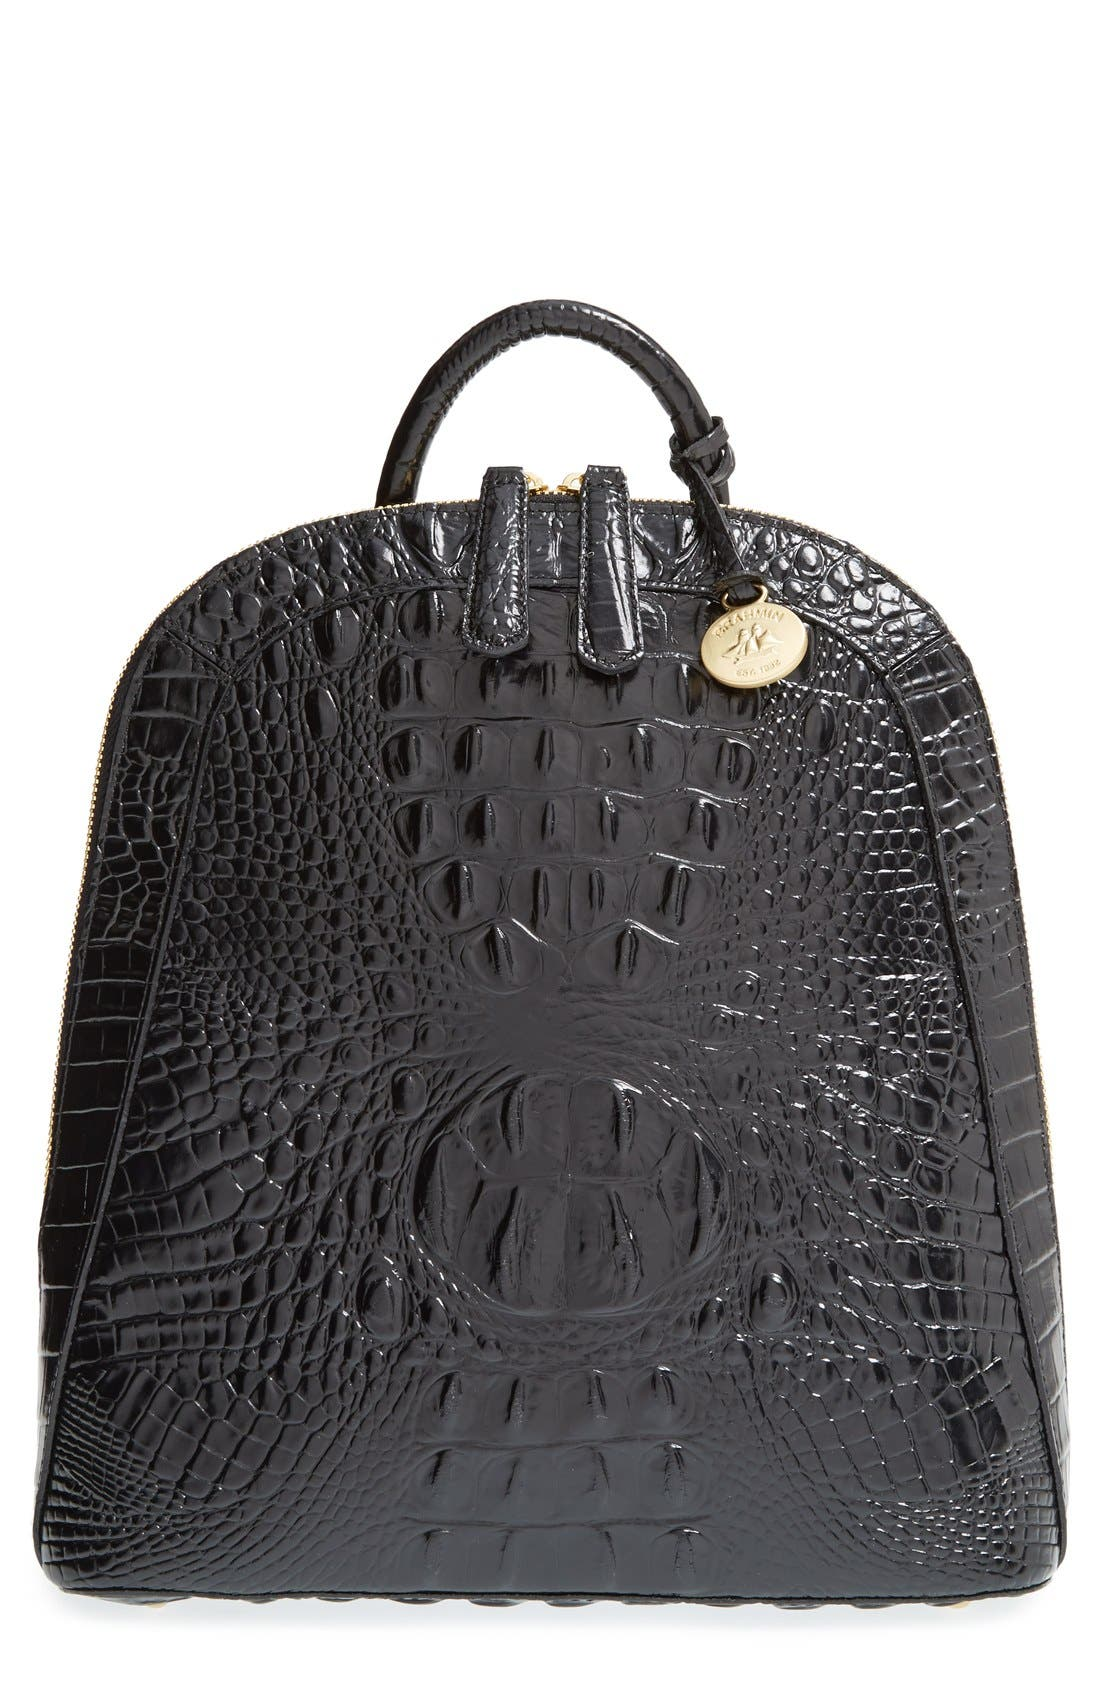 Main Image - Brahmin 'Rosemary' Croc Embossed Leather Backpack